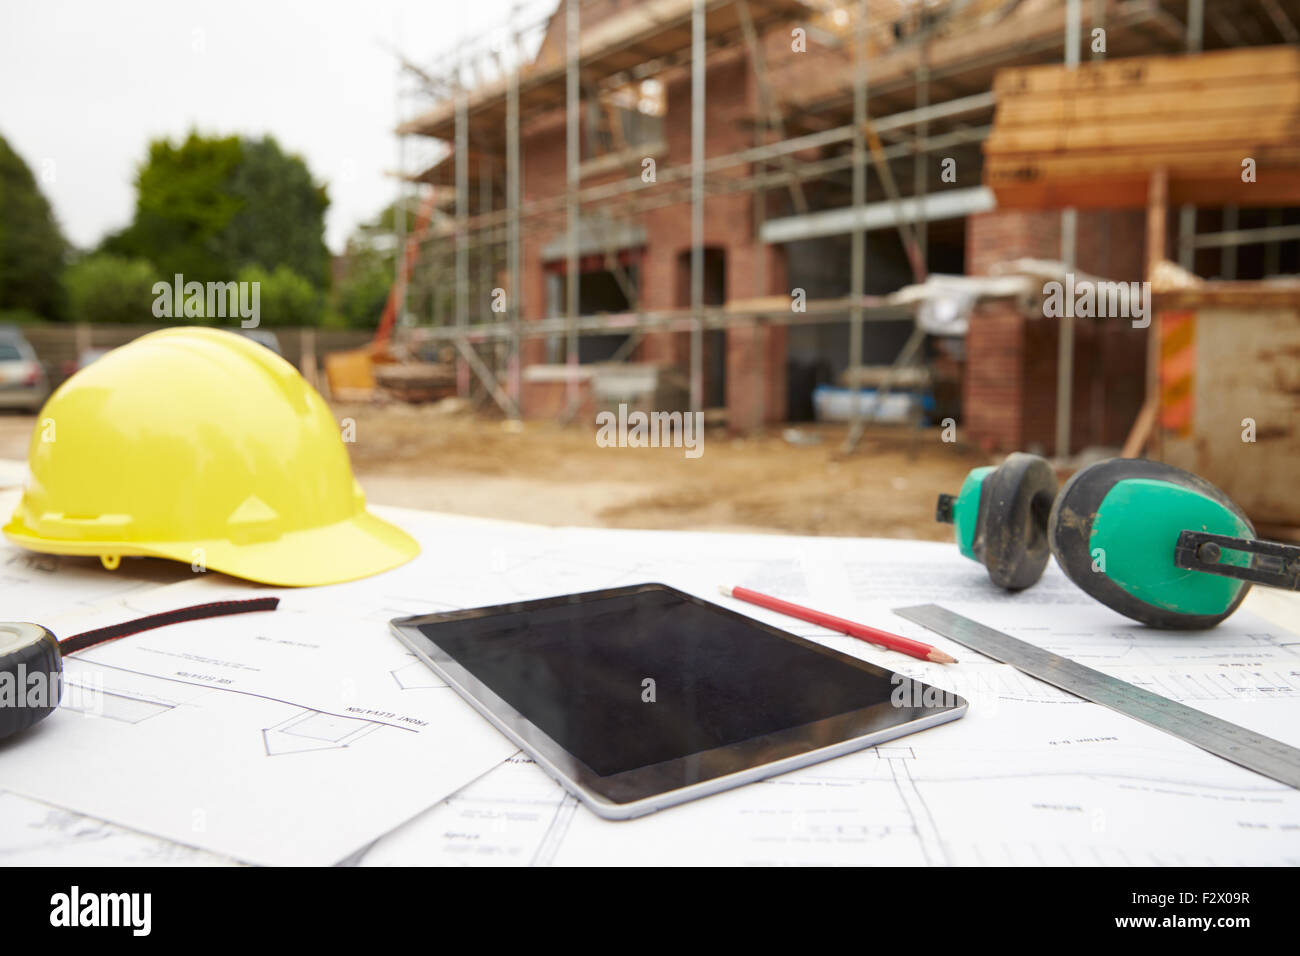 Close Up Of Plans And Digital Tablet On Building Site - Stock Image